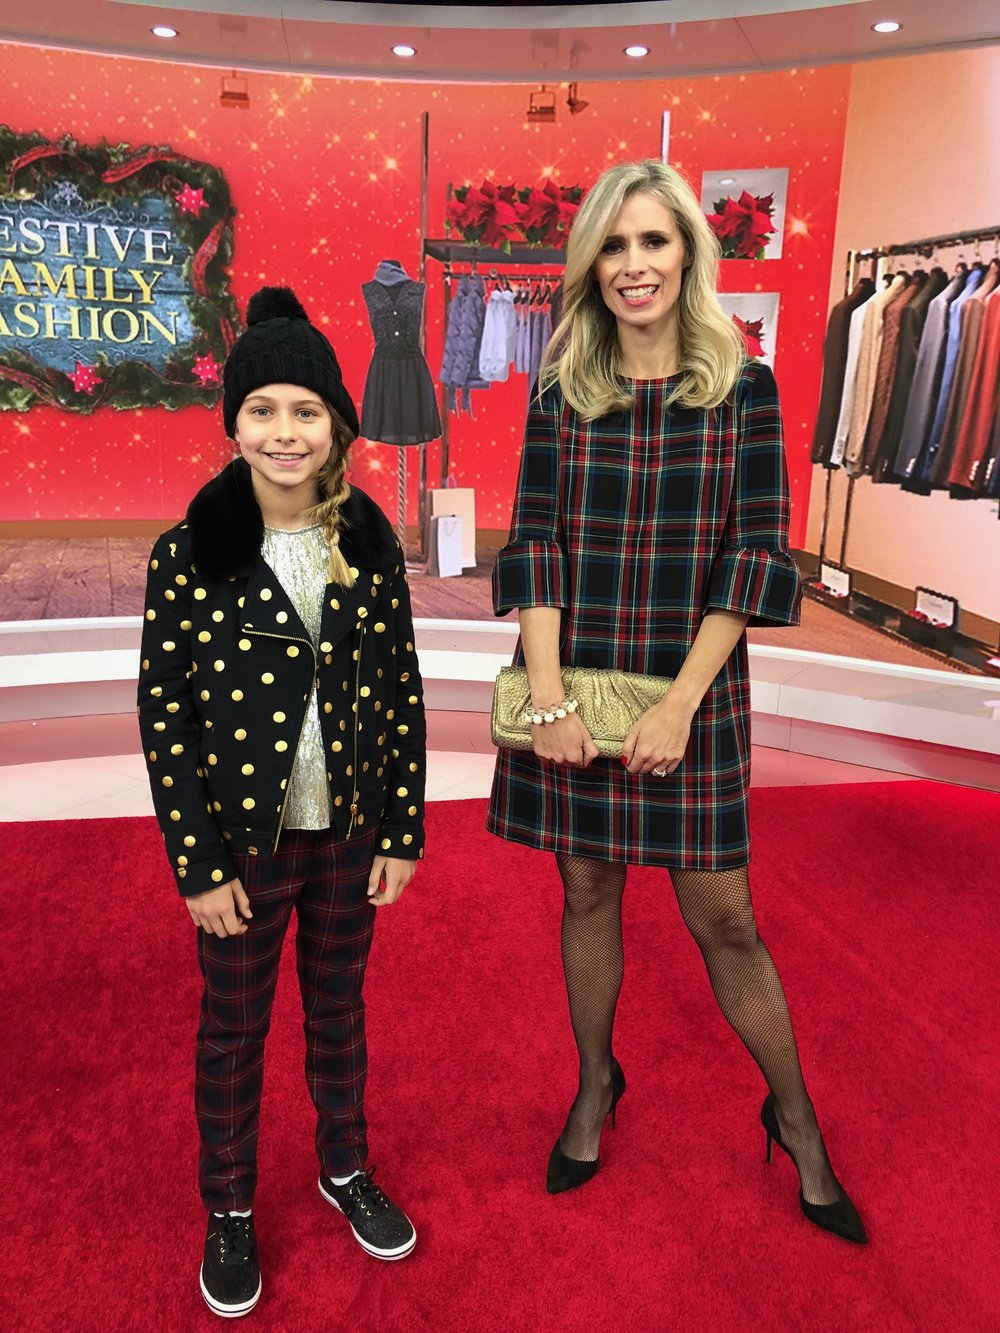 Playful Polka Dots & Plaids Holiday Family Fashions by fashion expert Amy E. Goodman